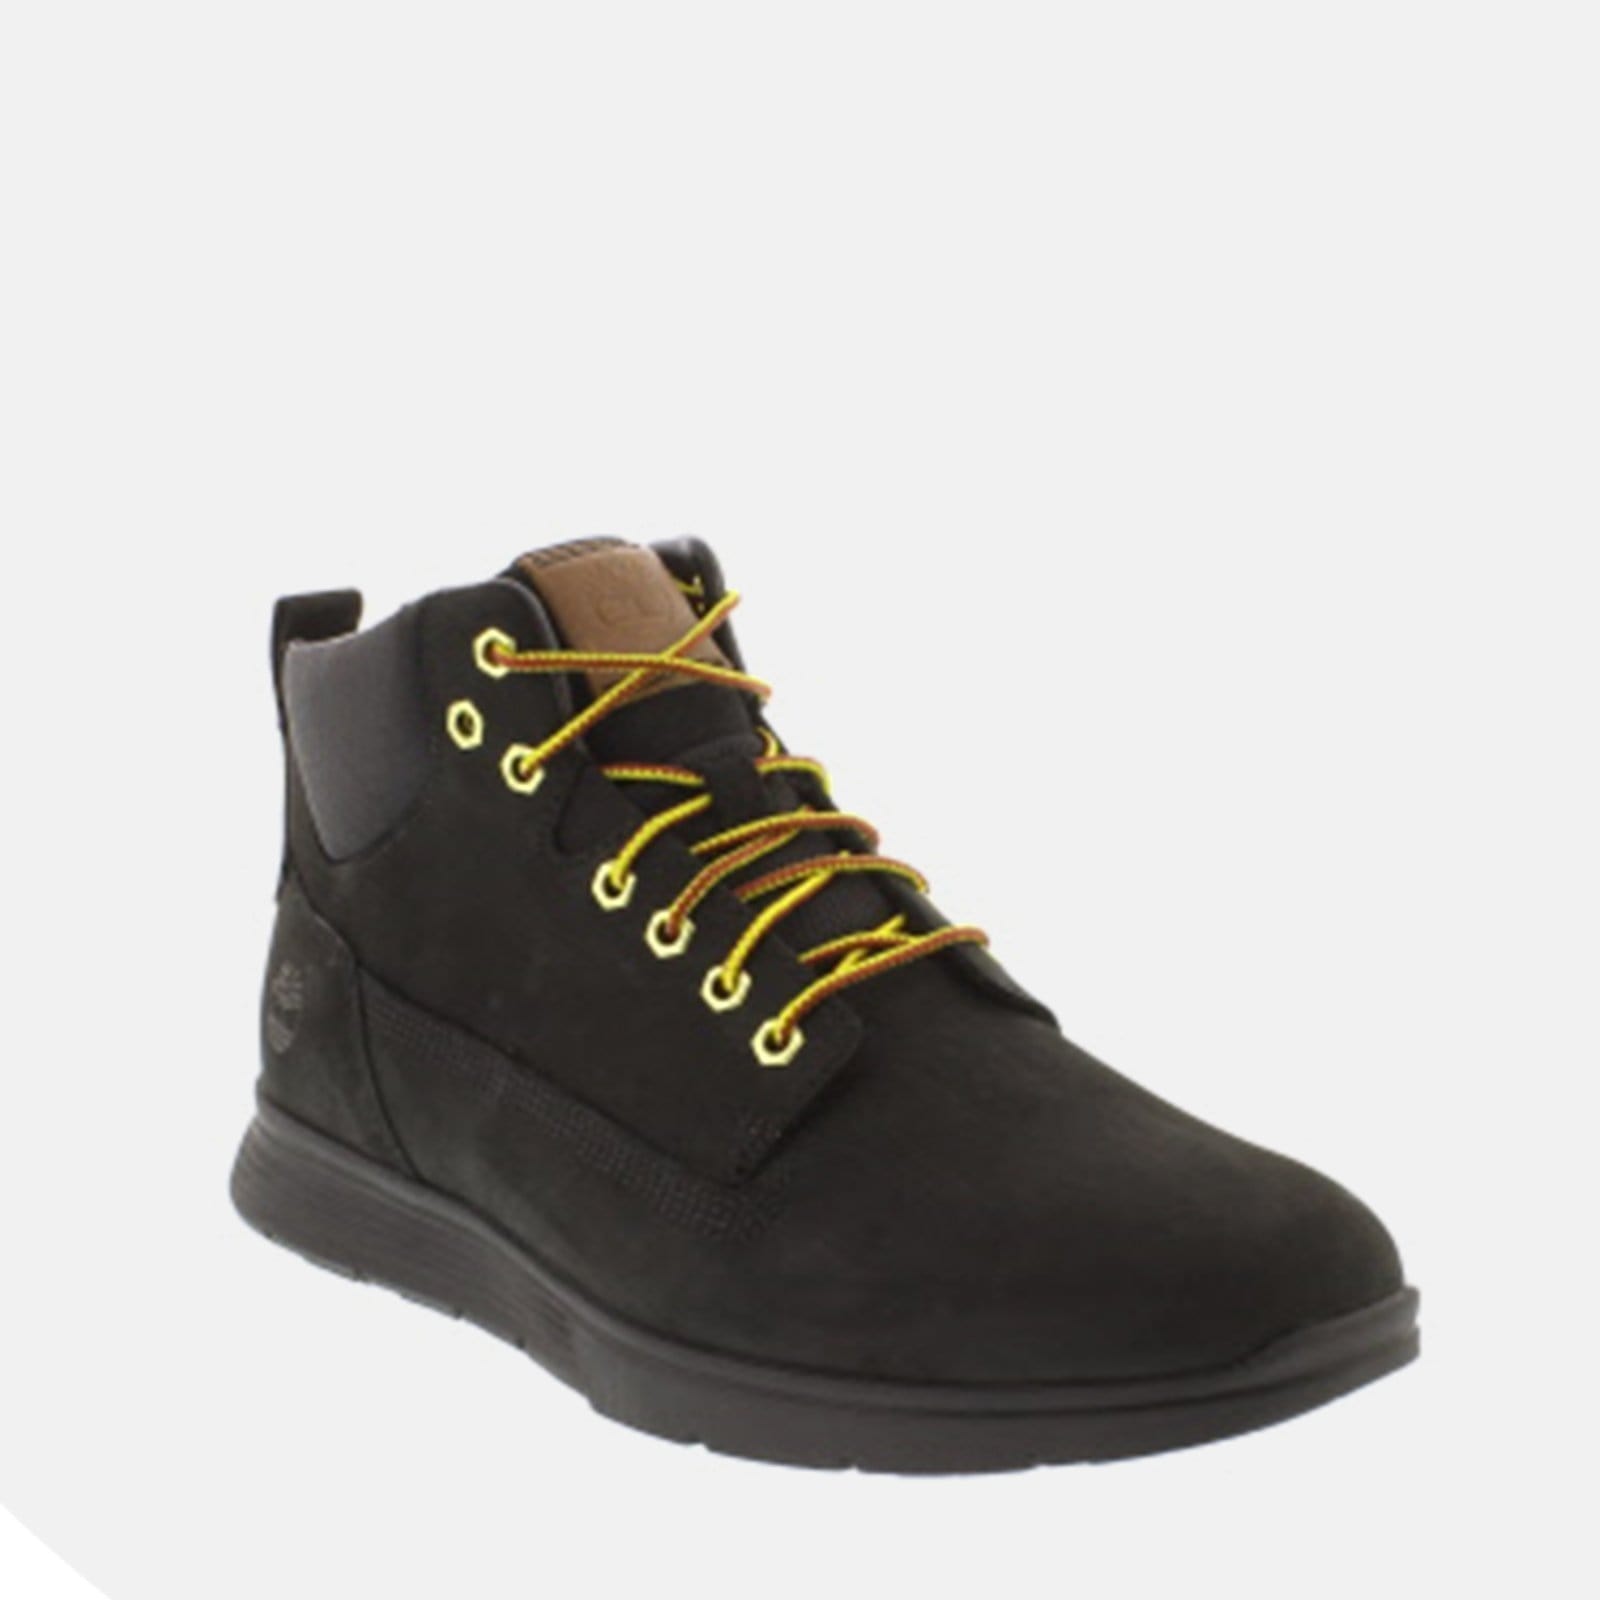 Timberland Footwear Killington Chukka CA19UK Black